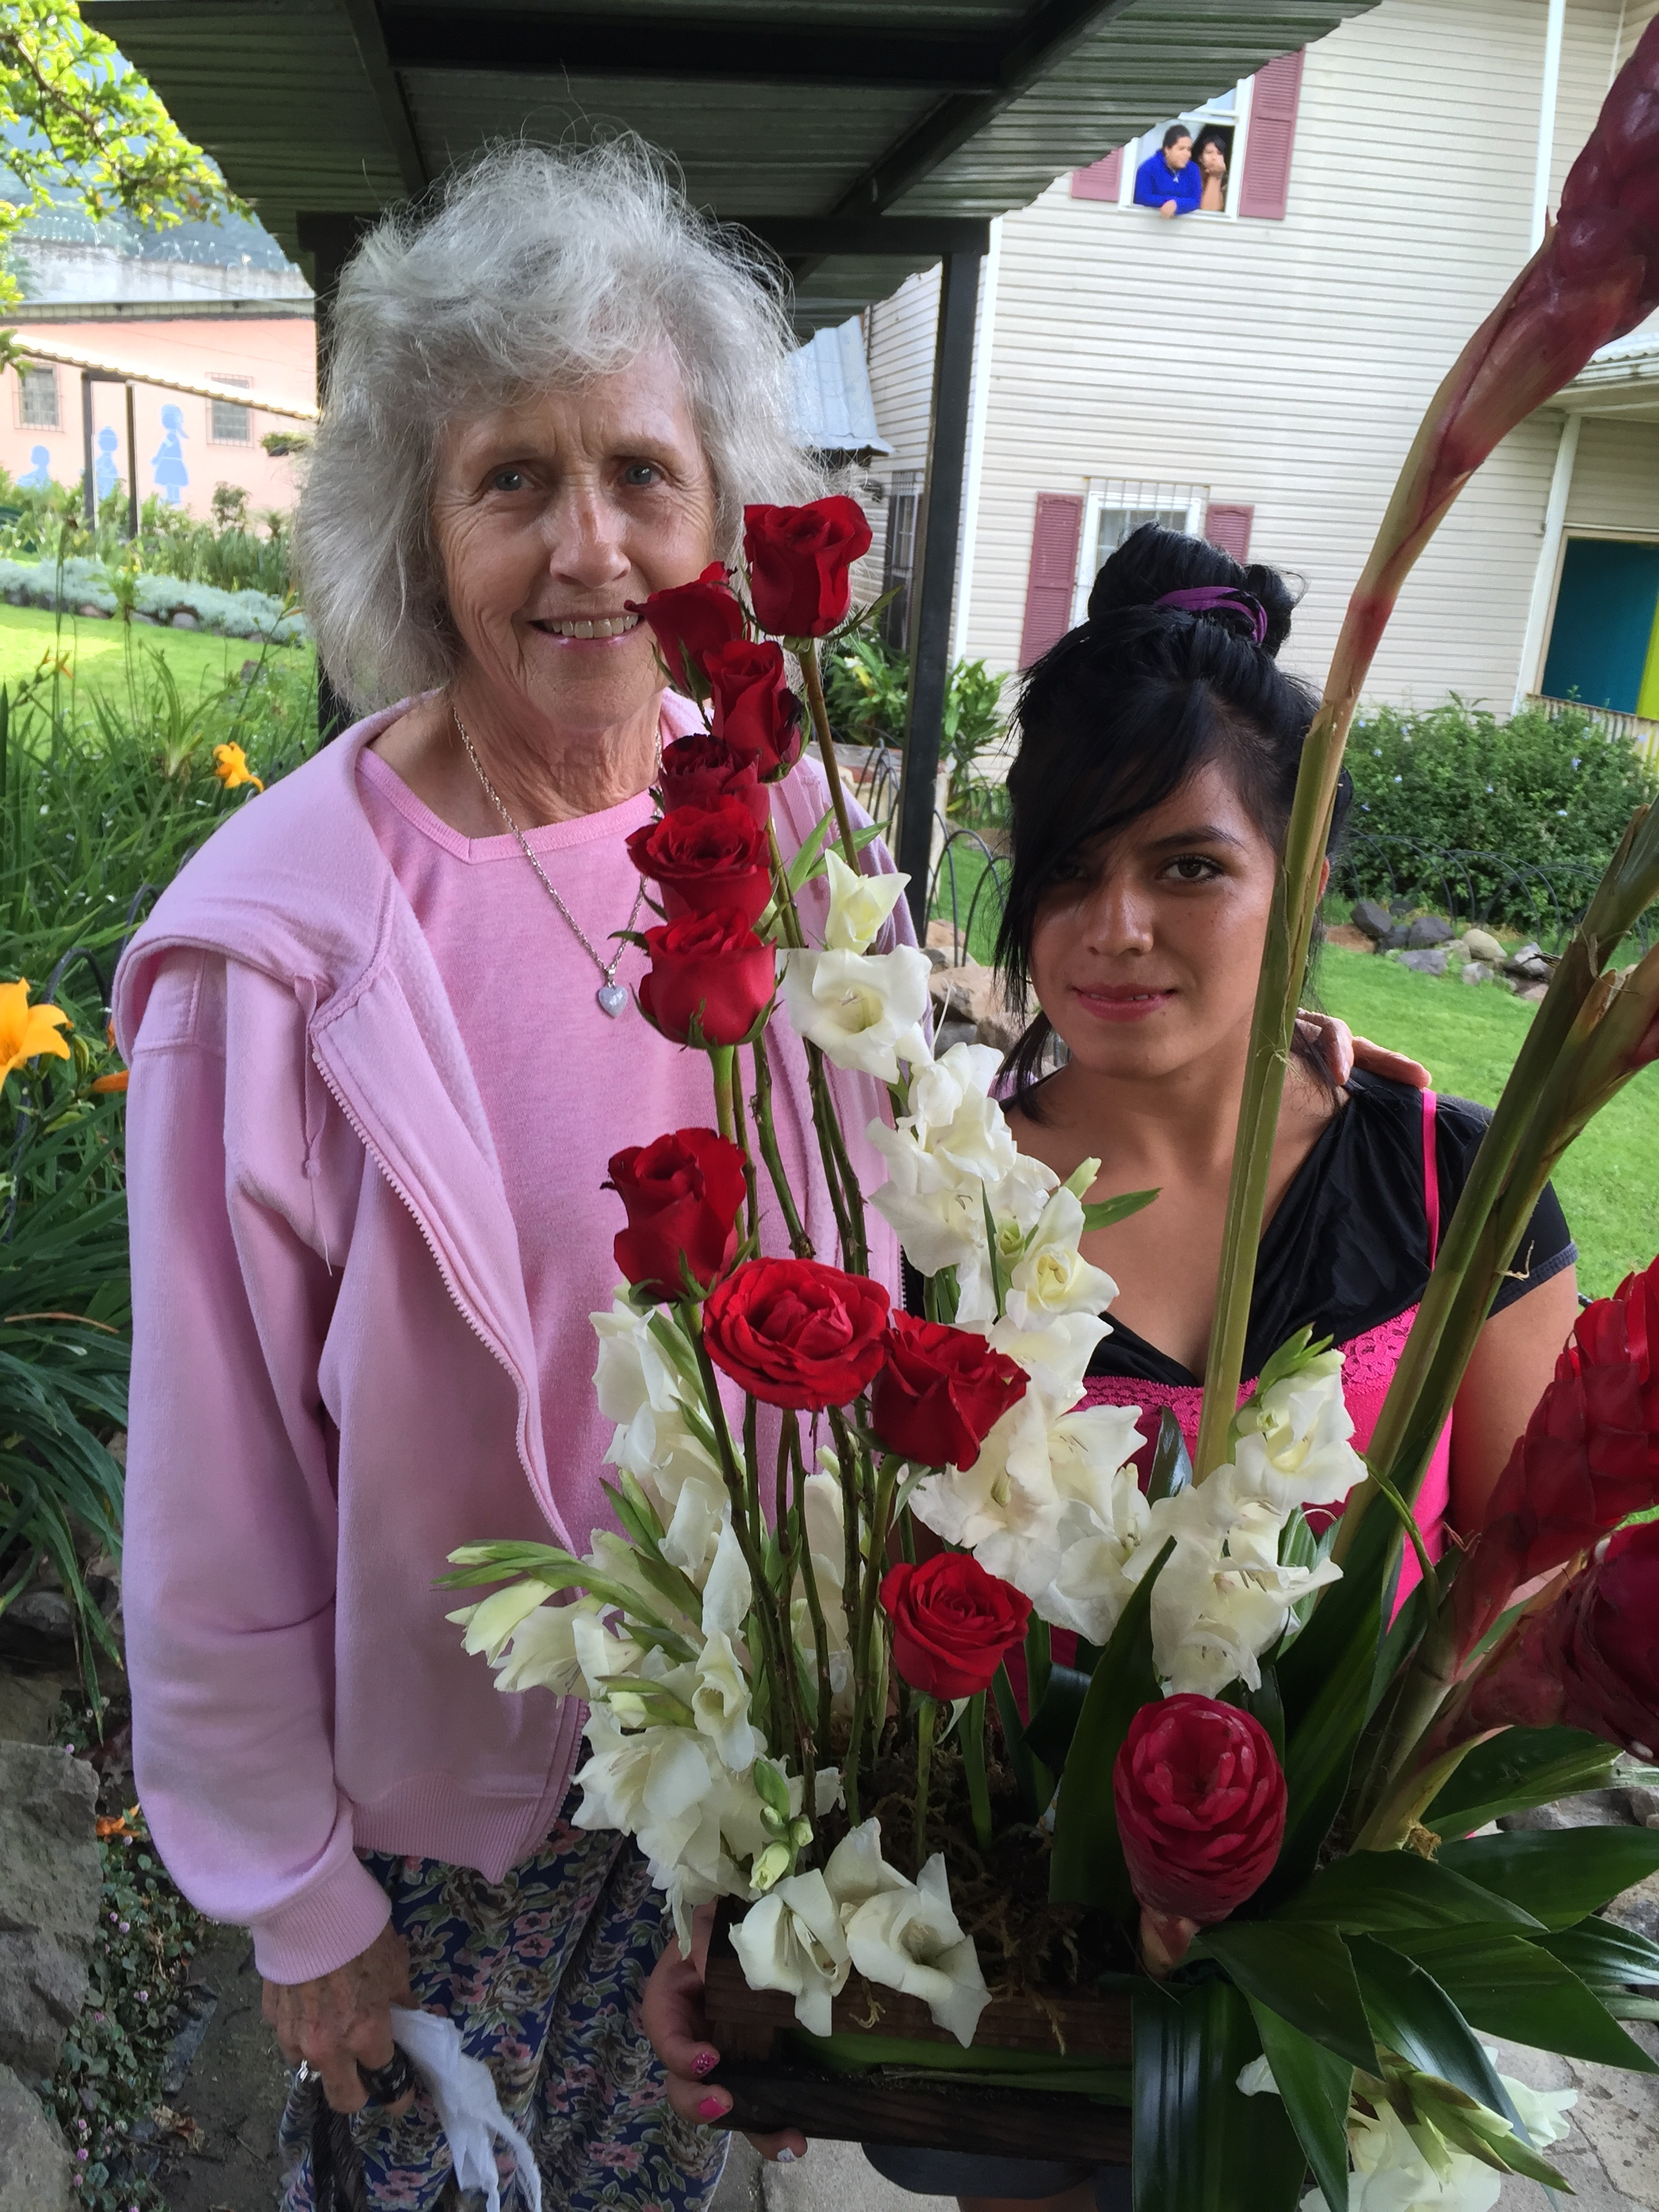 Shirley made anther bouquet for Dottie.